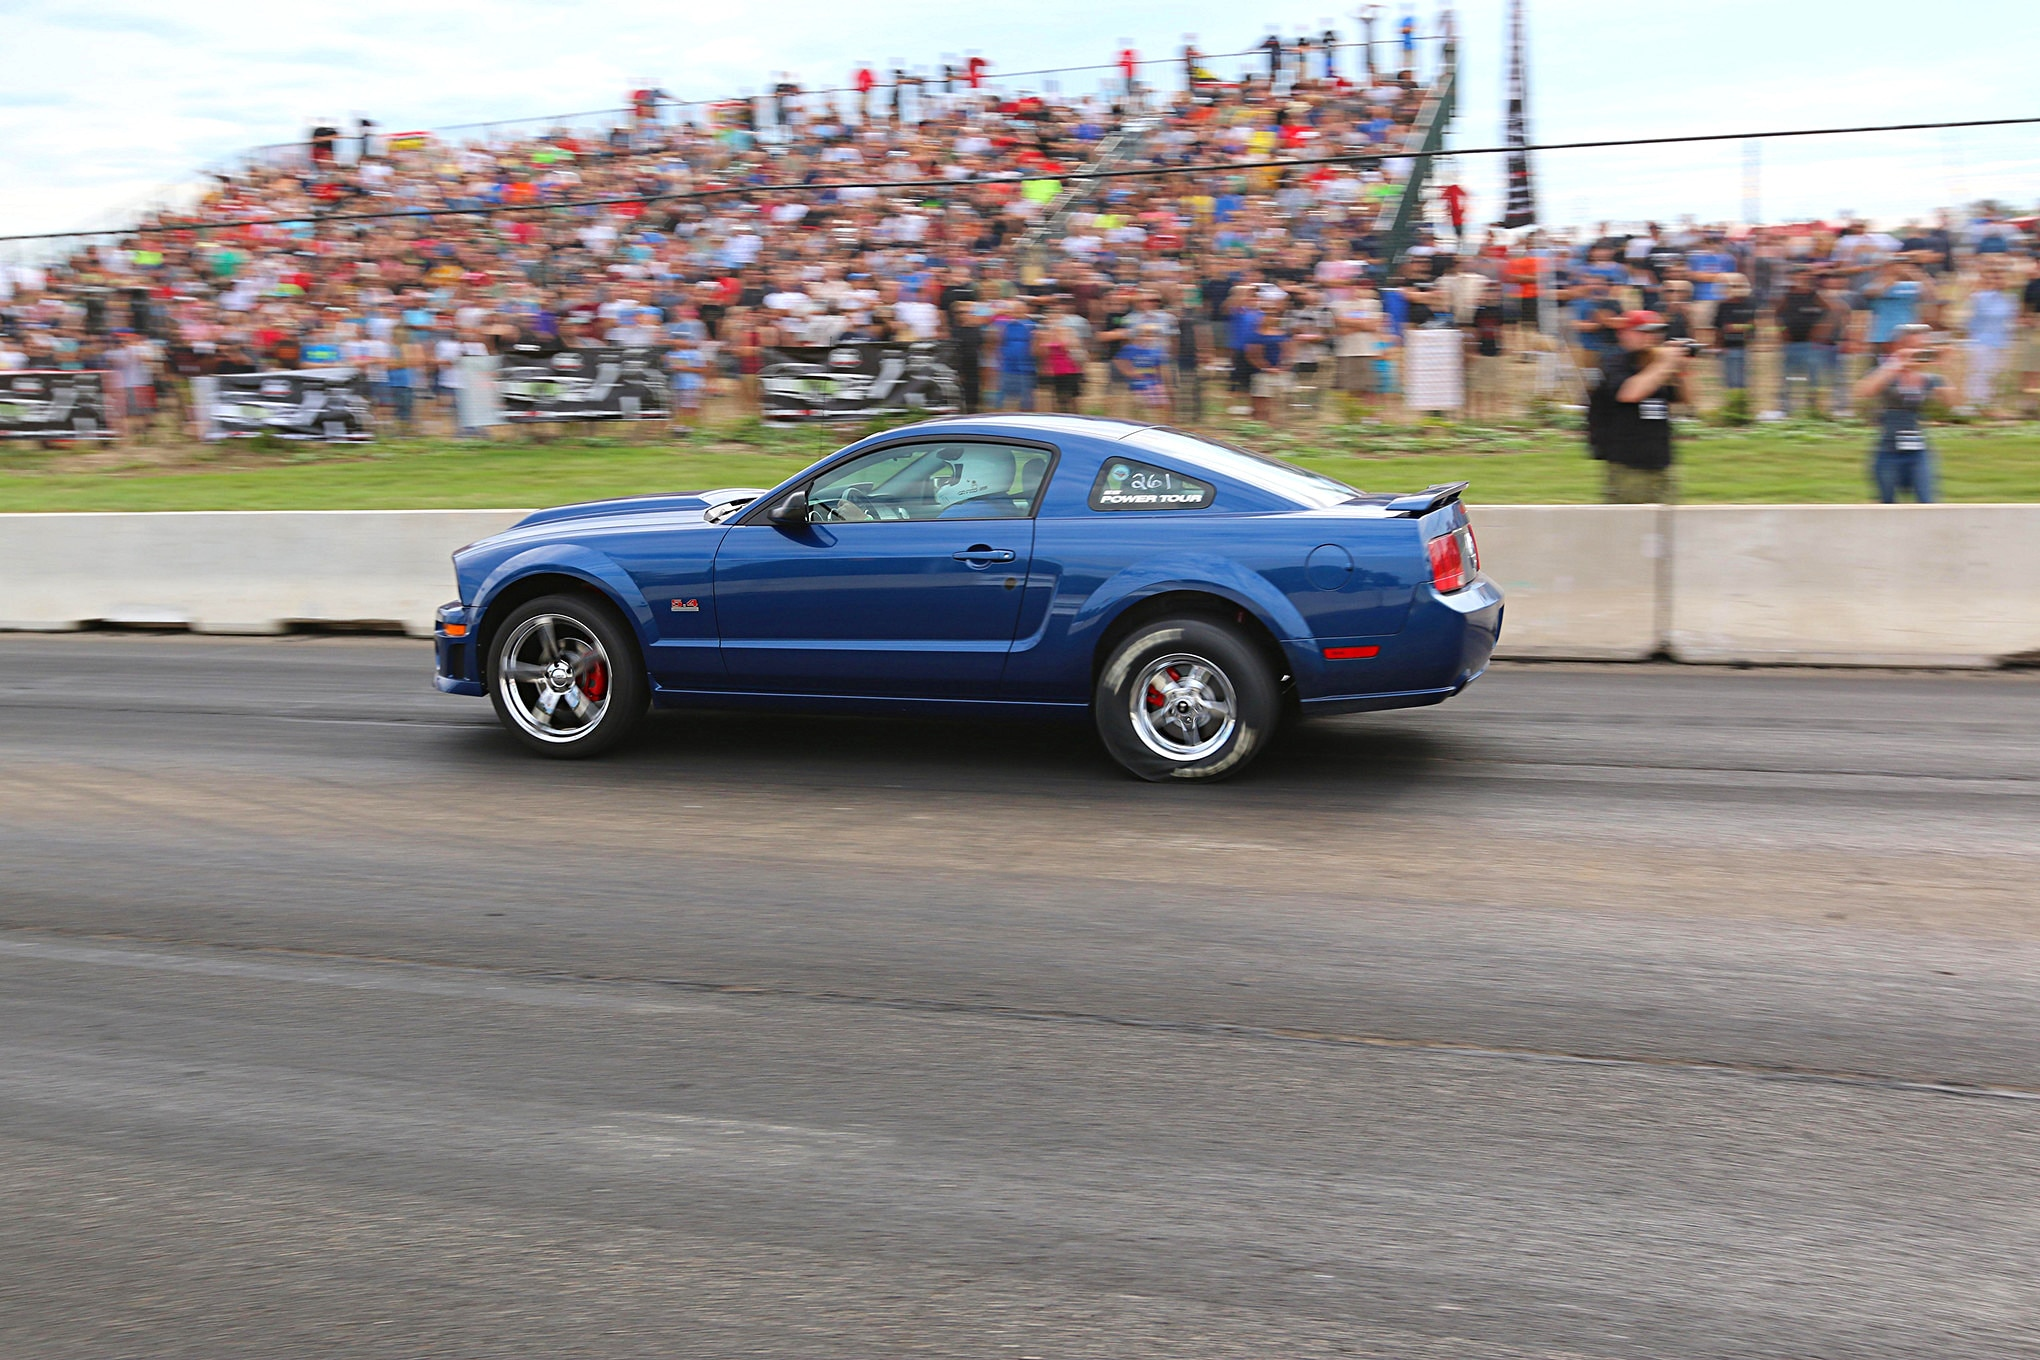 2016 Woodward Dream Cruise Mustangs 113